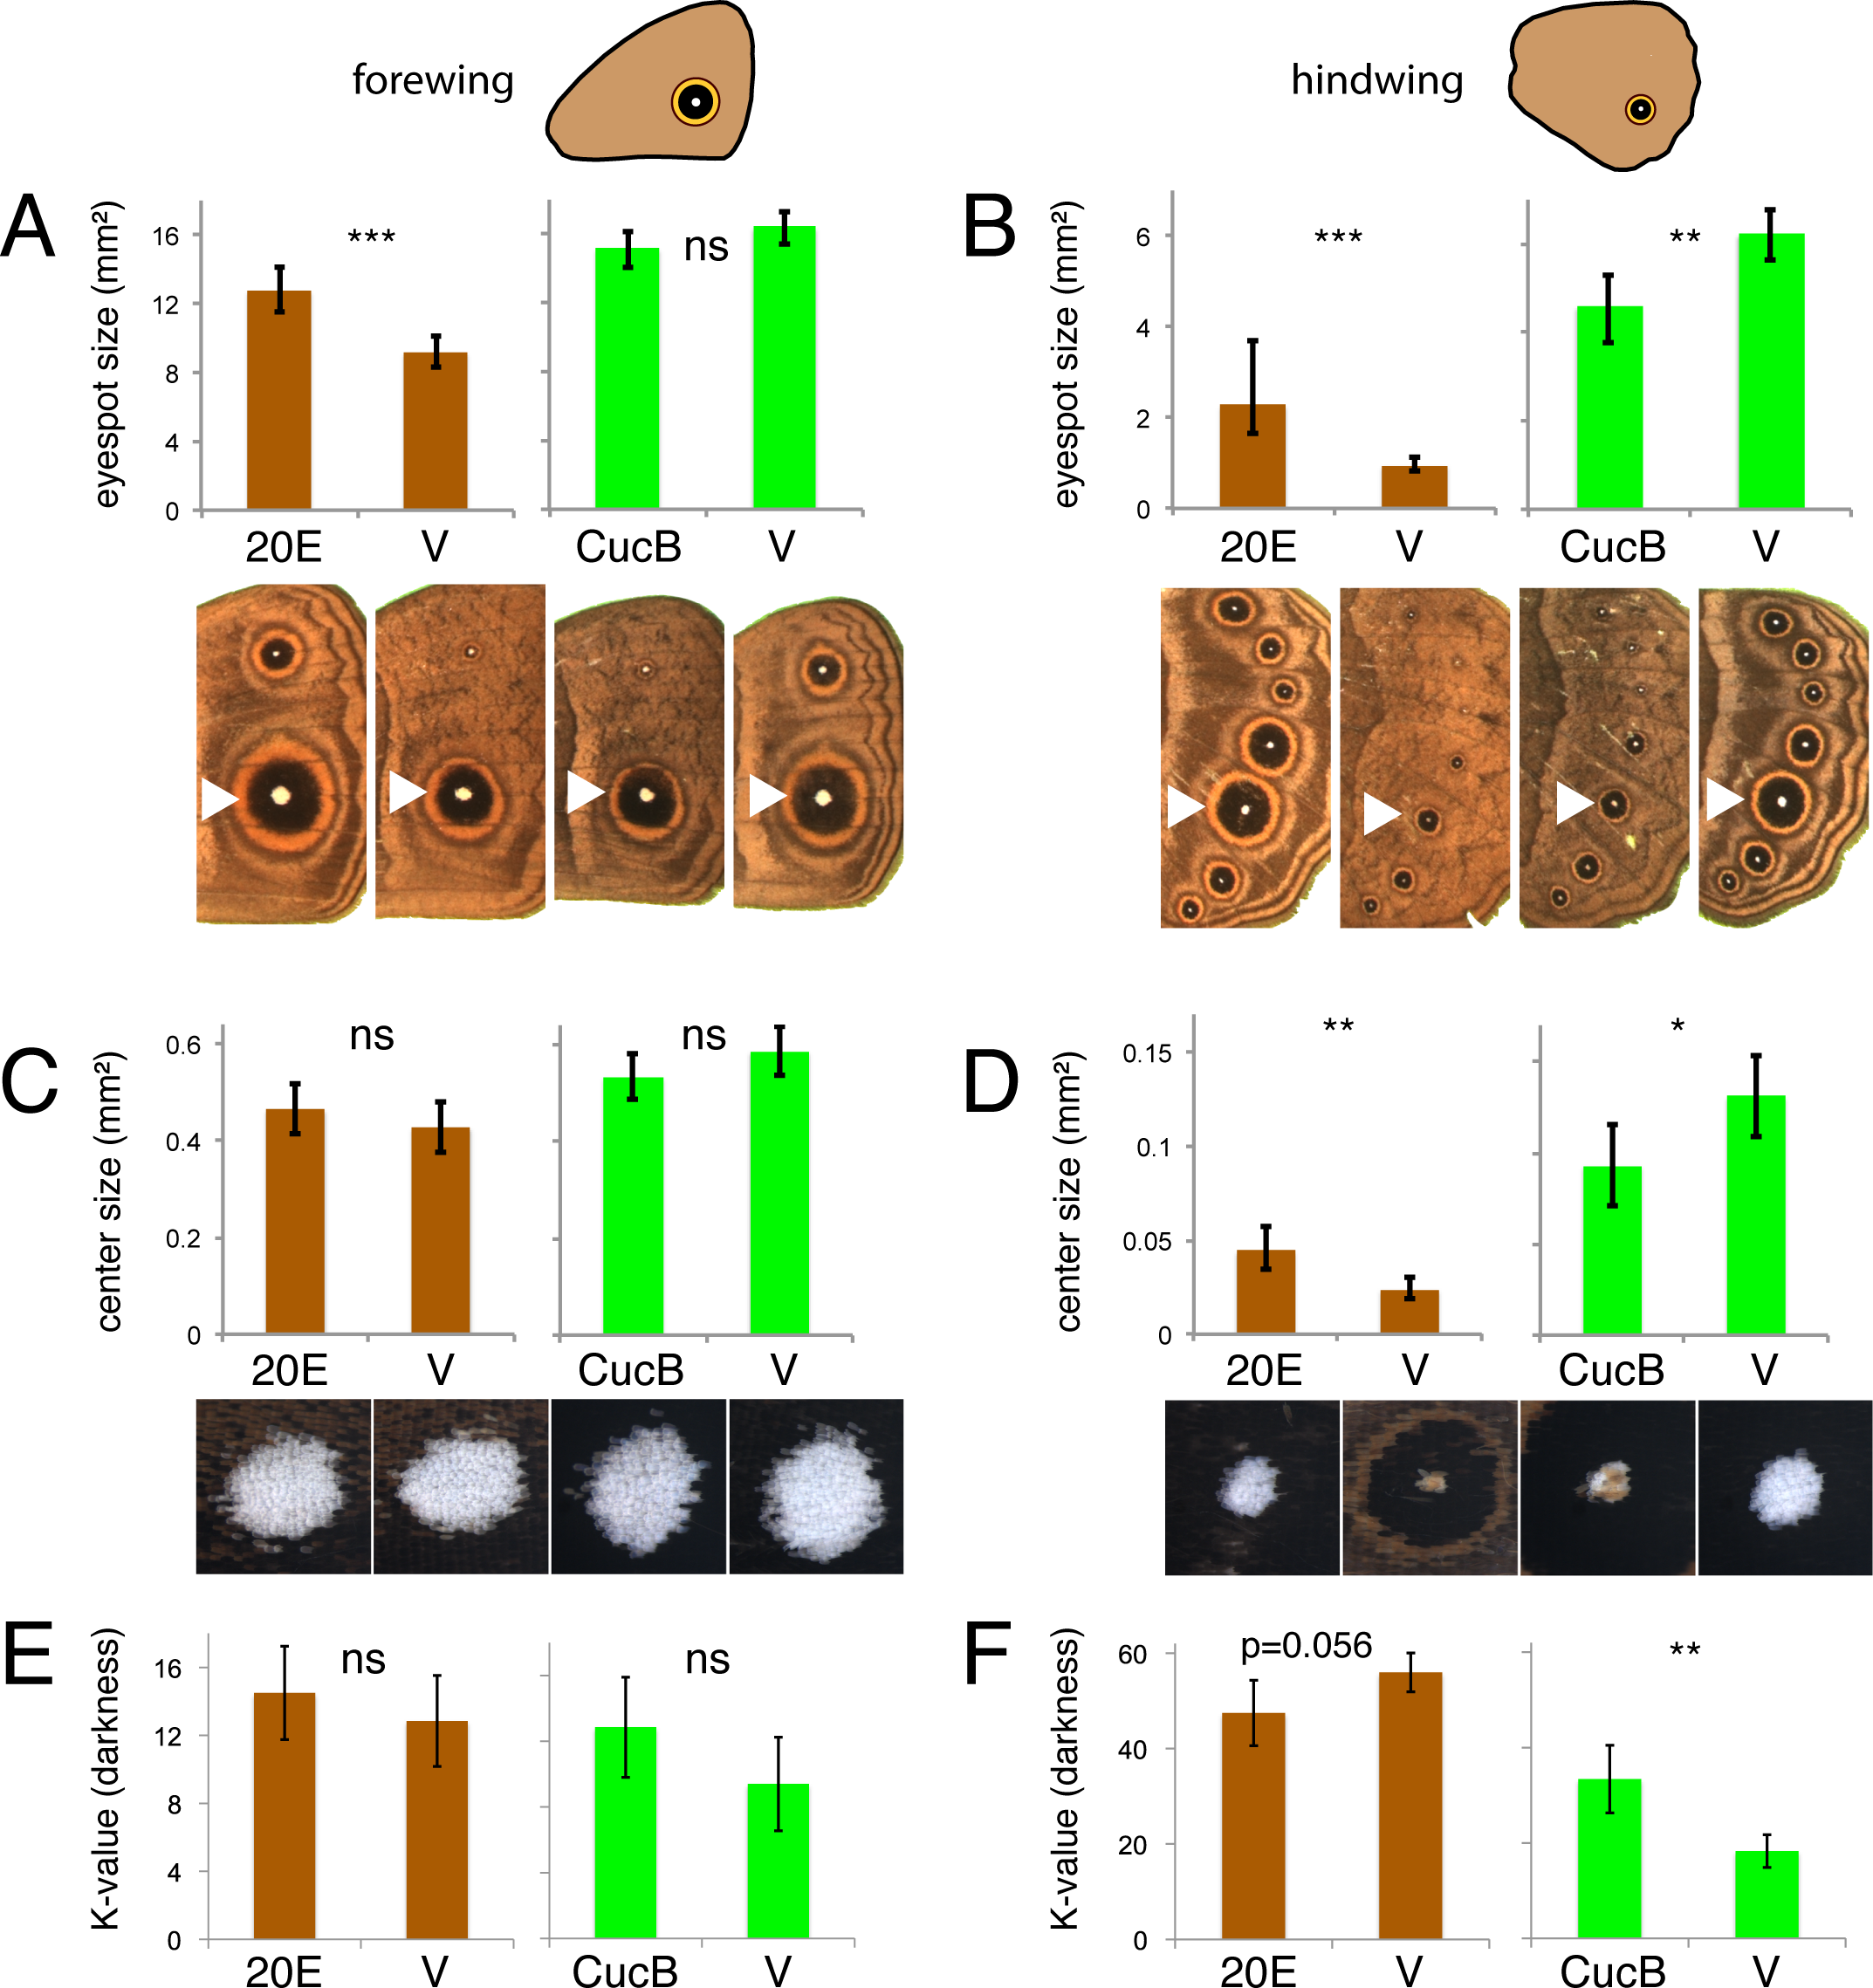 Manipulations of ecdysone signaling during the wanderer stages of development alters hindwing eyespots more extensively than forewing eyespots.